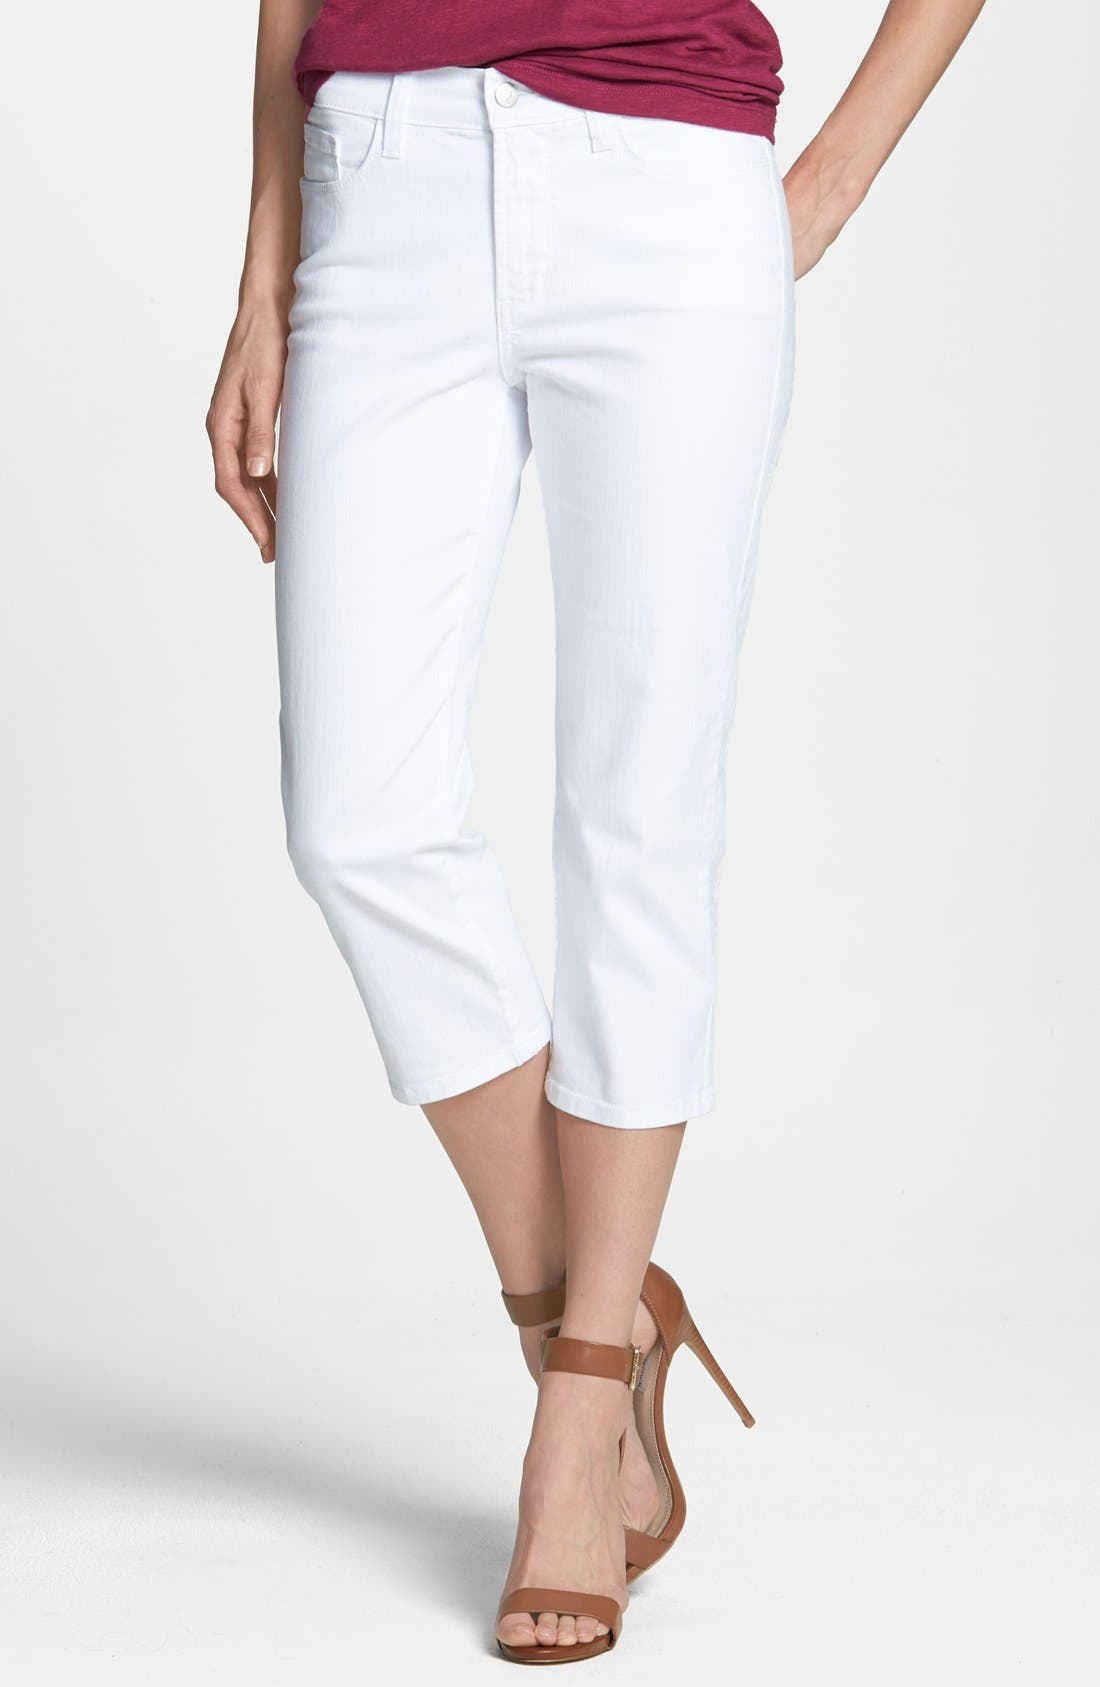 Main Image - NYDJ 'Ariel' Embroidered Pocket Stretch Crop Jeans (Optic White) (Petite)